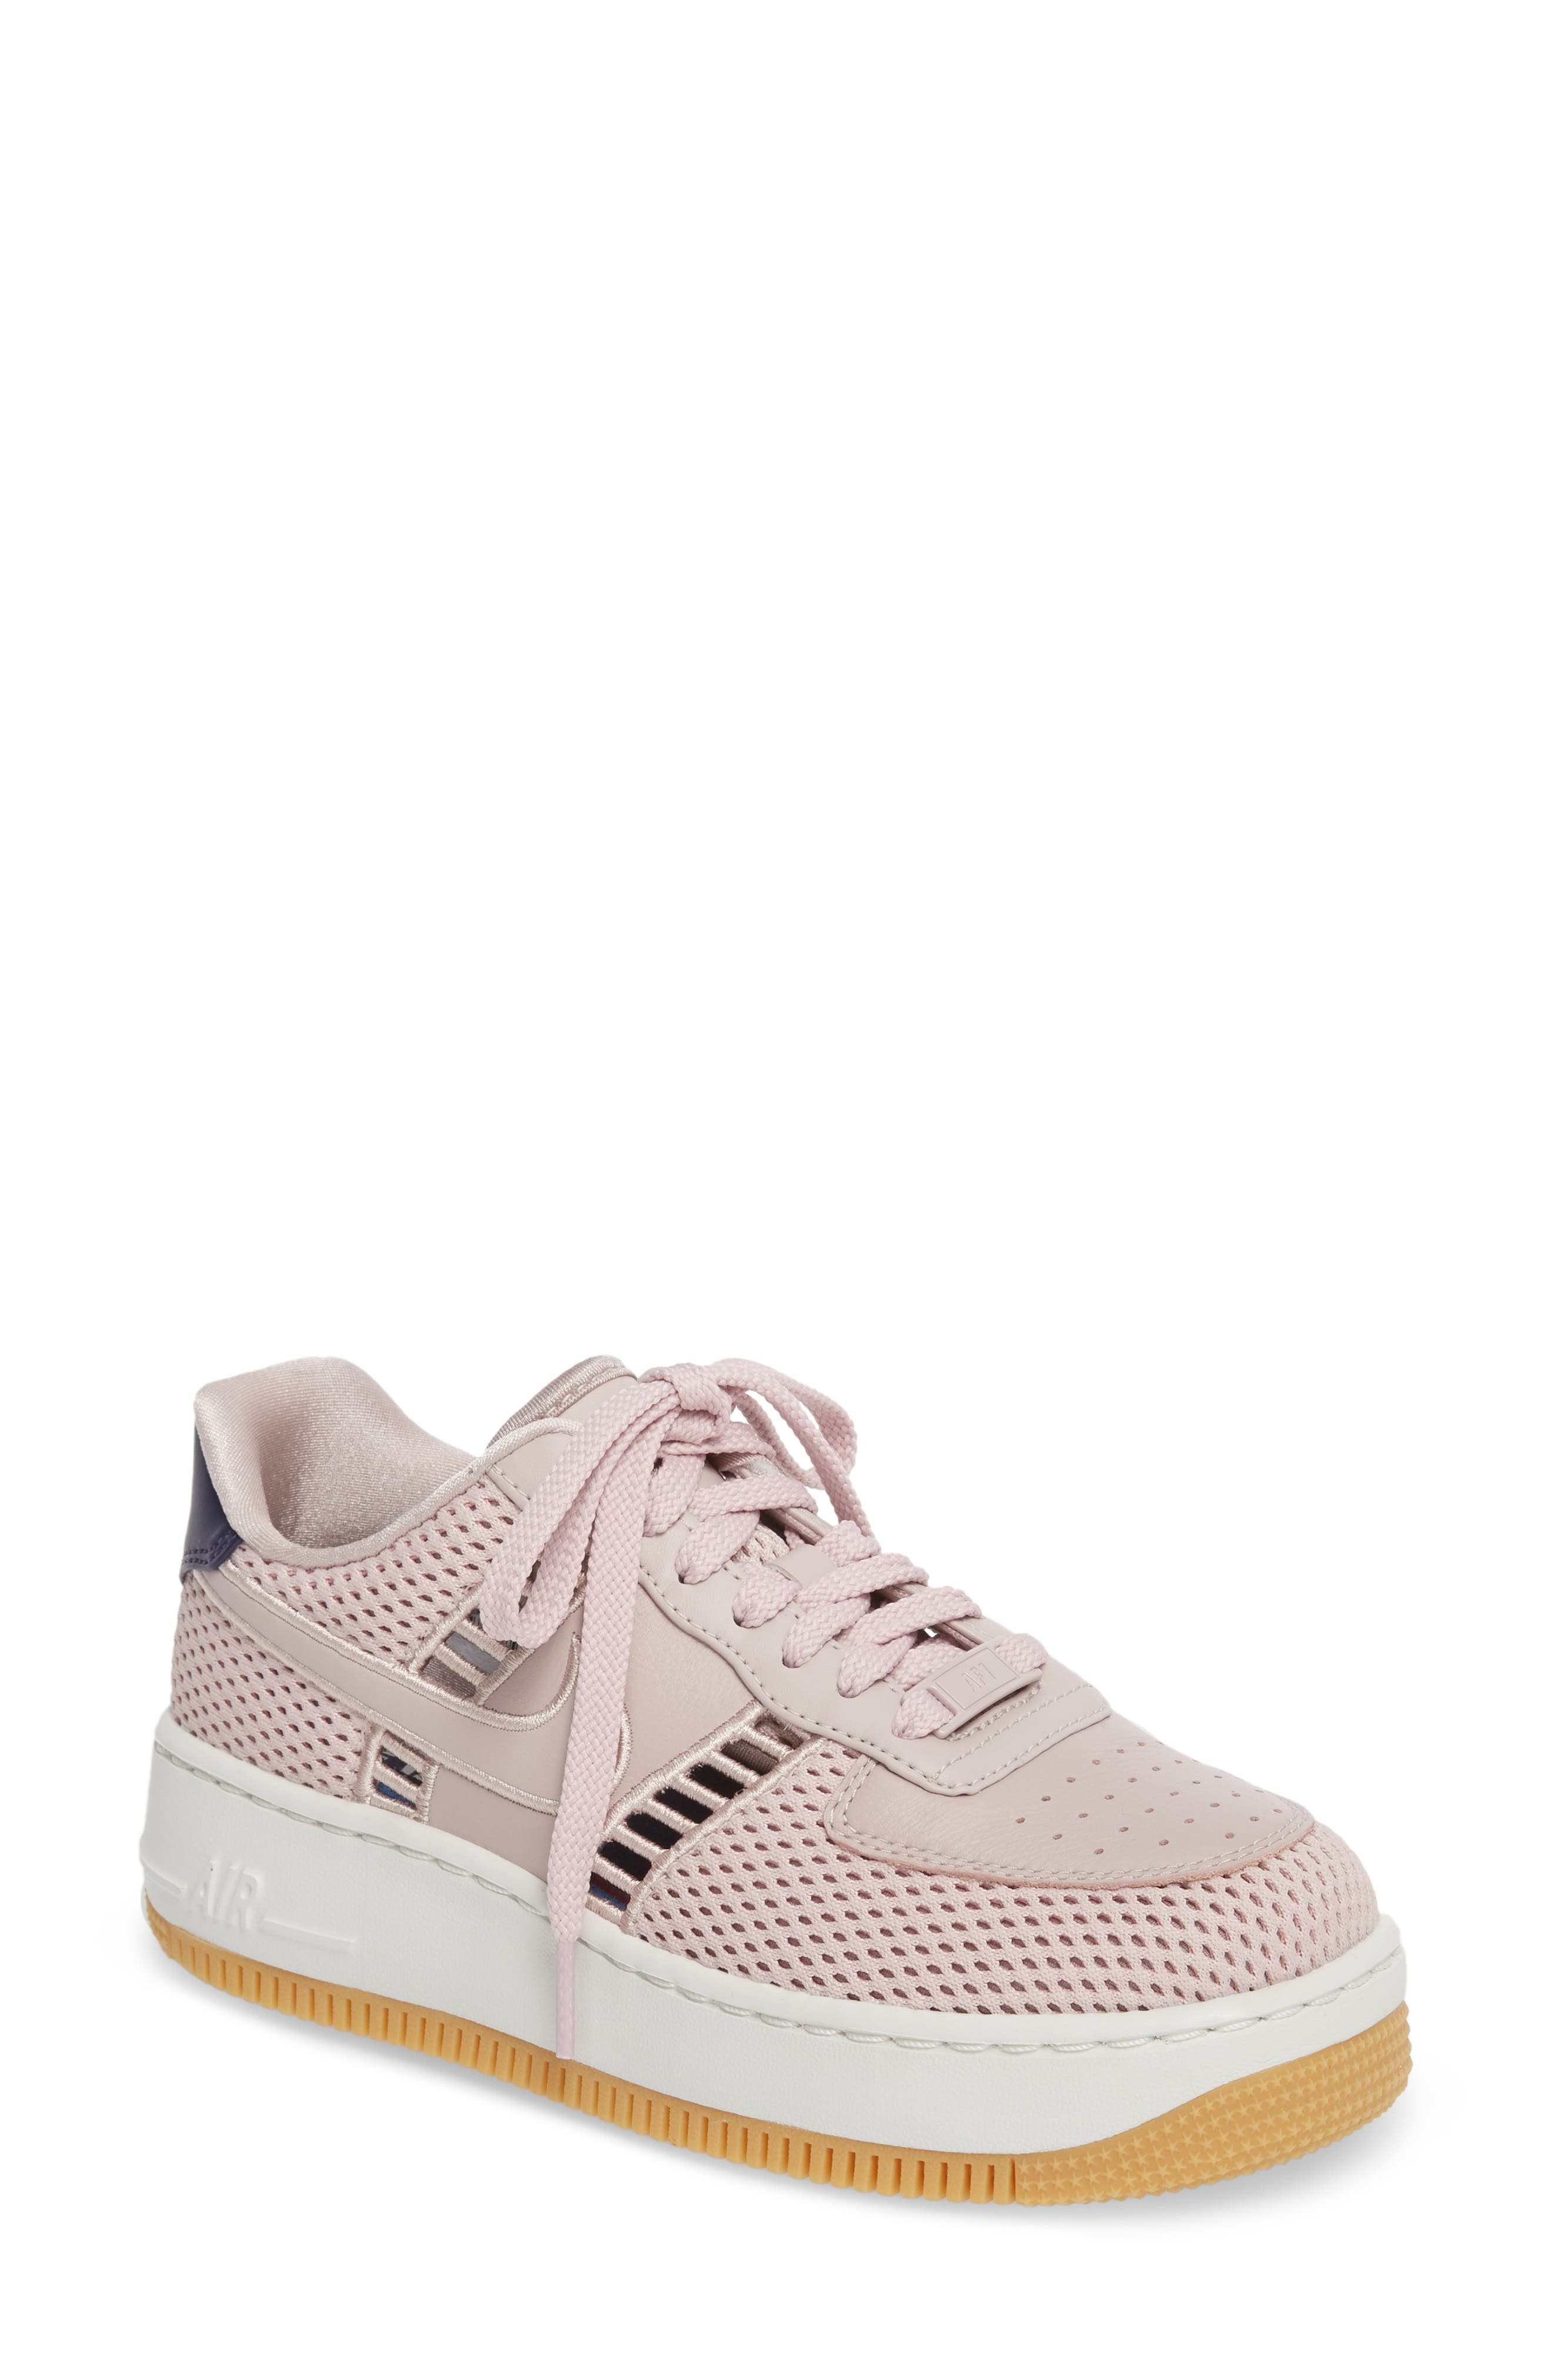 Air Force 1 Upstep SI Mesh Sneaker,                             Main thumbnail 1, color,                             Particle Rose/ Summit White